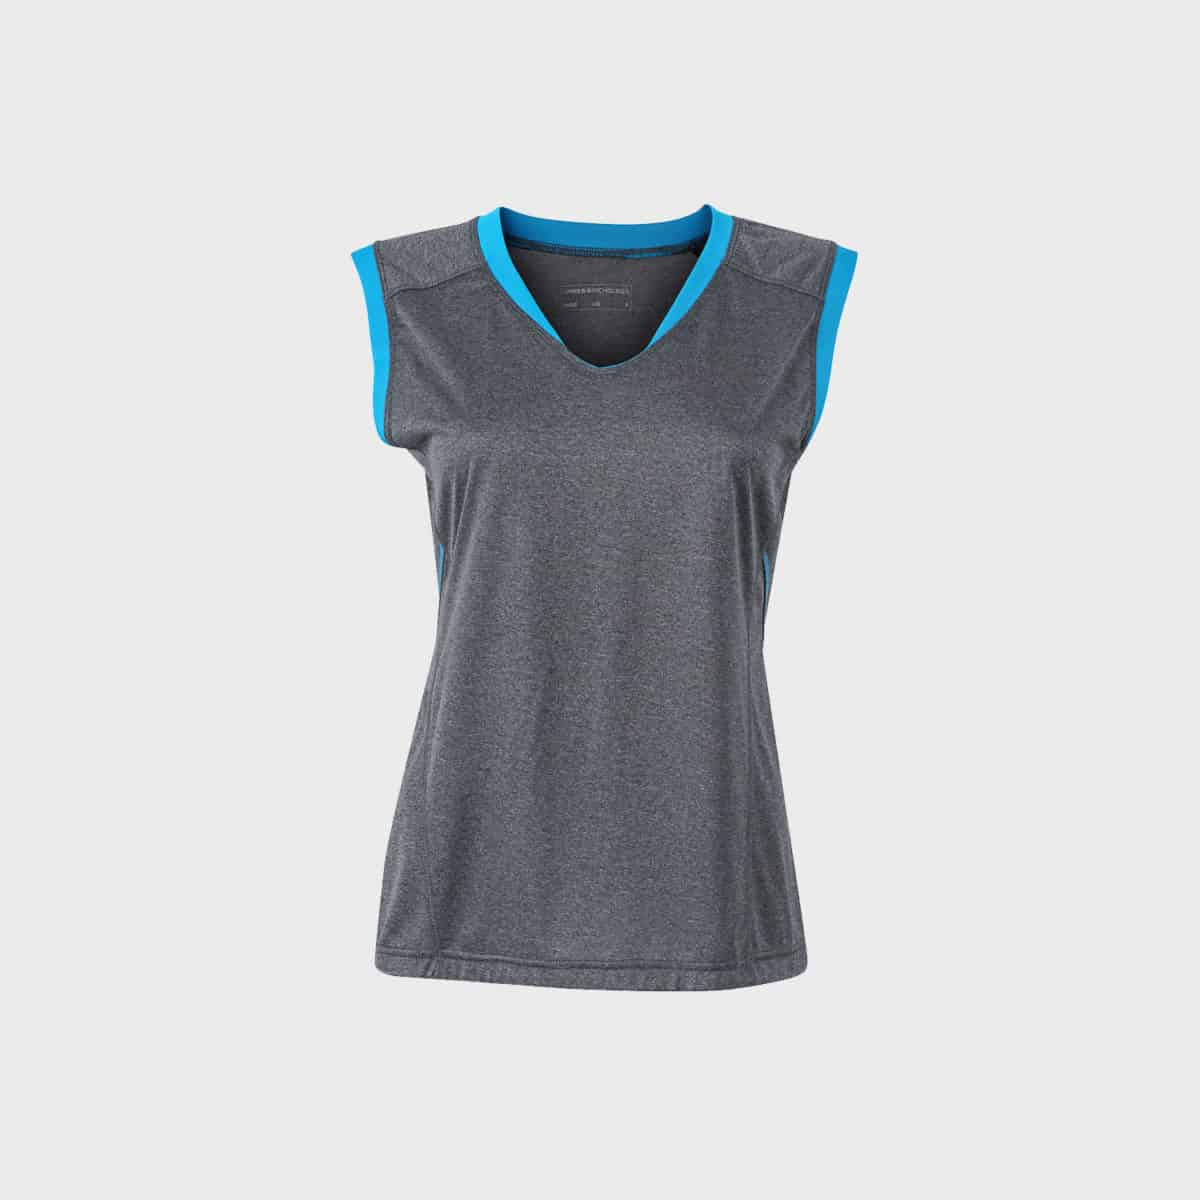 runnig-tank-top-damen-black-melange-atlantic-kaufen-besticken_stickmanufaktur